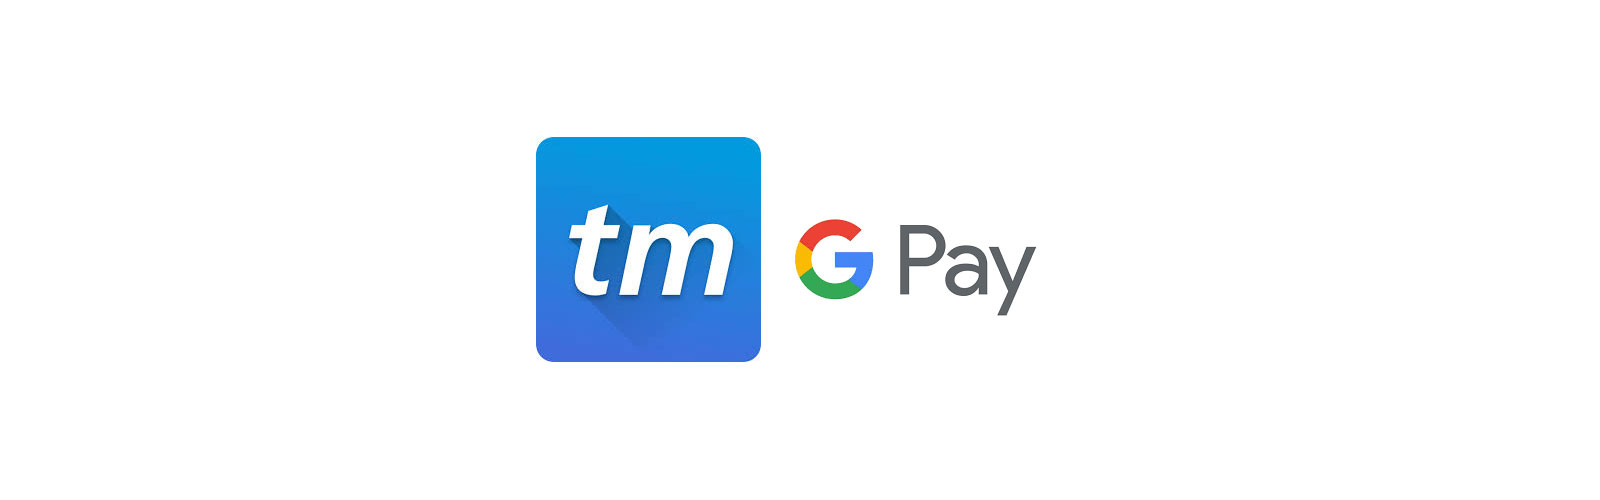 ticketmaster-google-pay